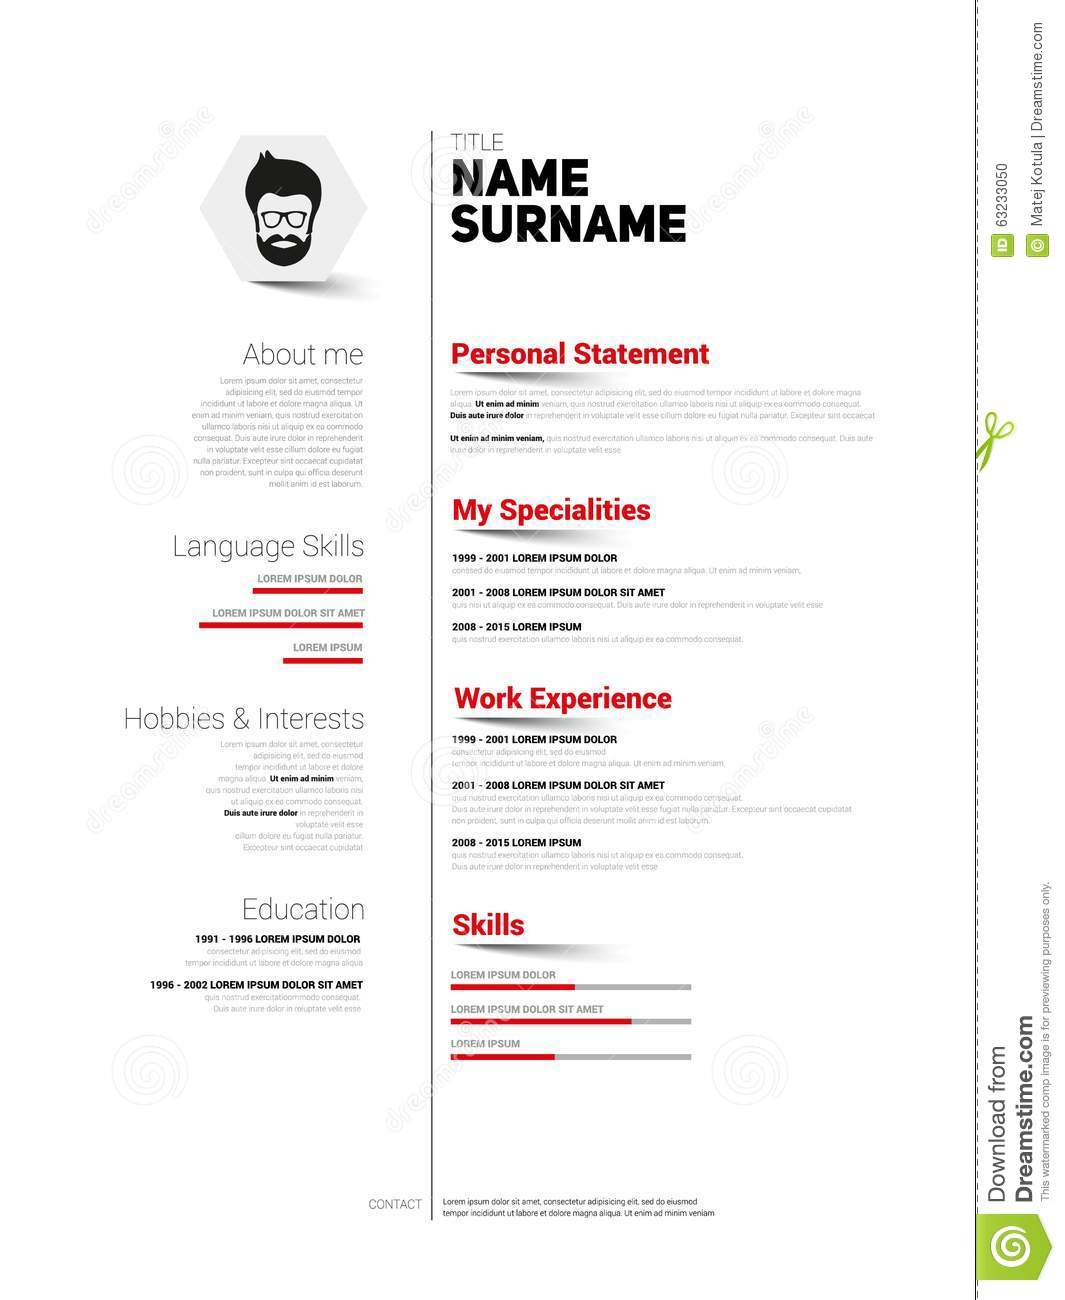 Cv-simple-bw Stock Illustration - Image: 63233050